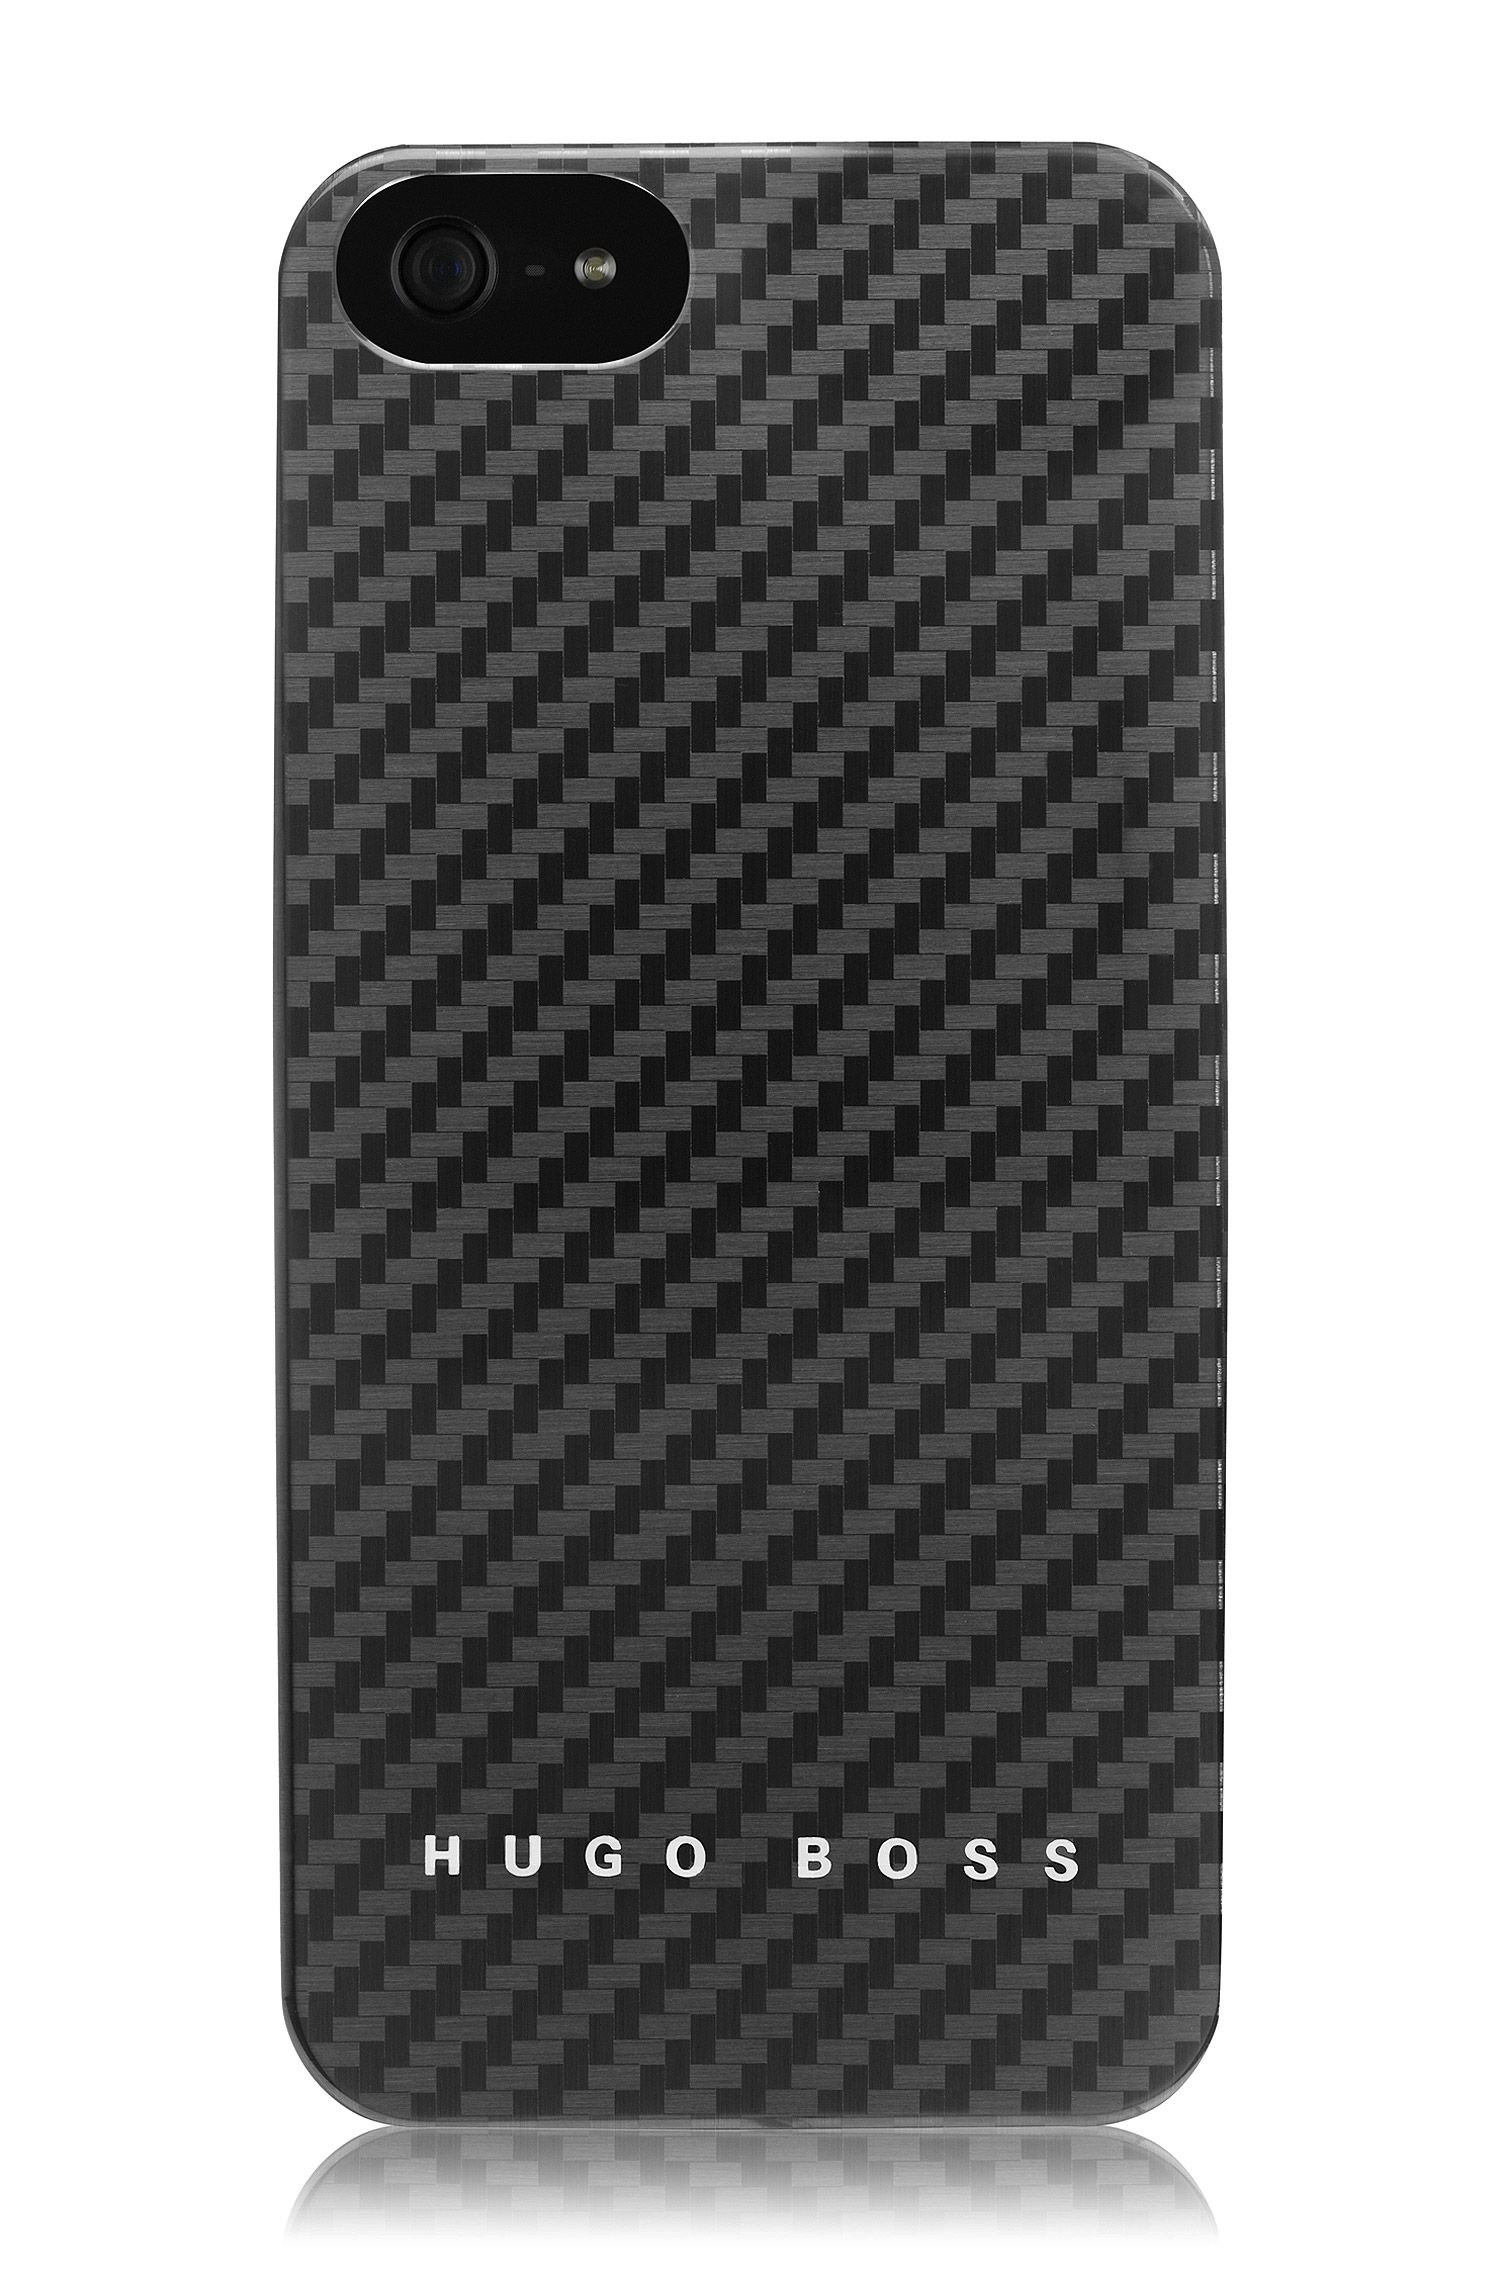 Coque rigide pour iPhone 5, Carbon V